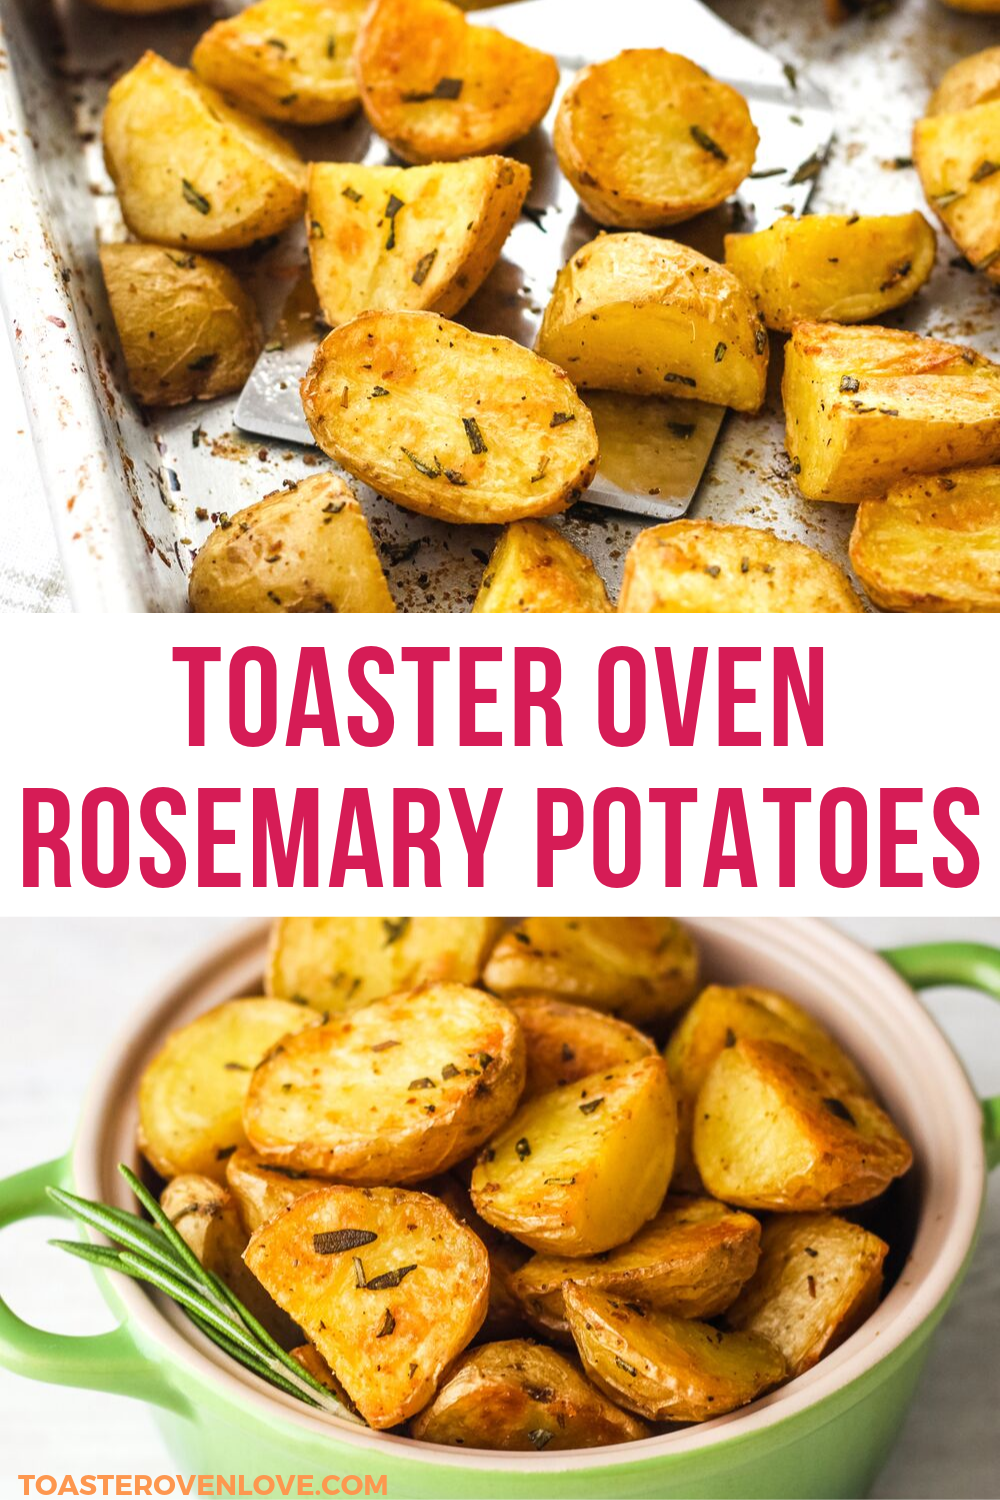 Toaster Oven Rosemary Potatoes Convection Instructions Included Recipe Oven Recipes Dinner Vegetable Pie Recipes Recipes